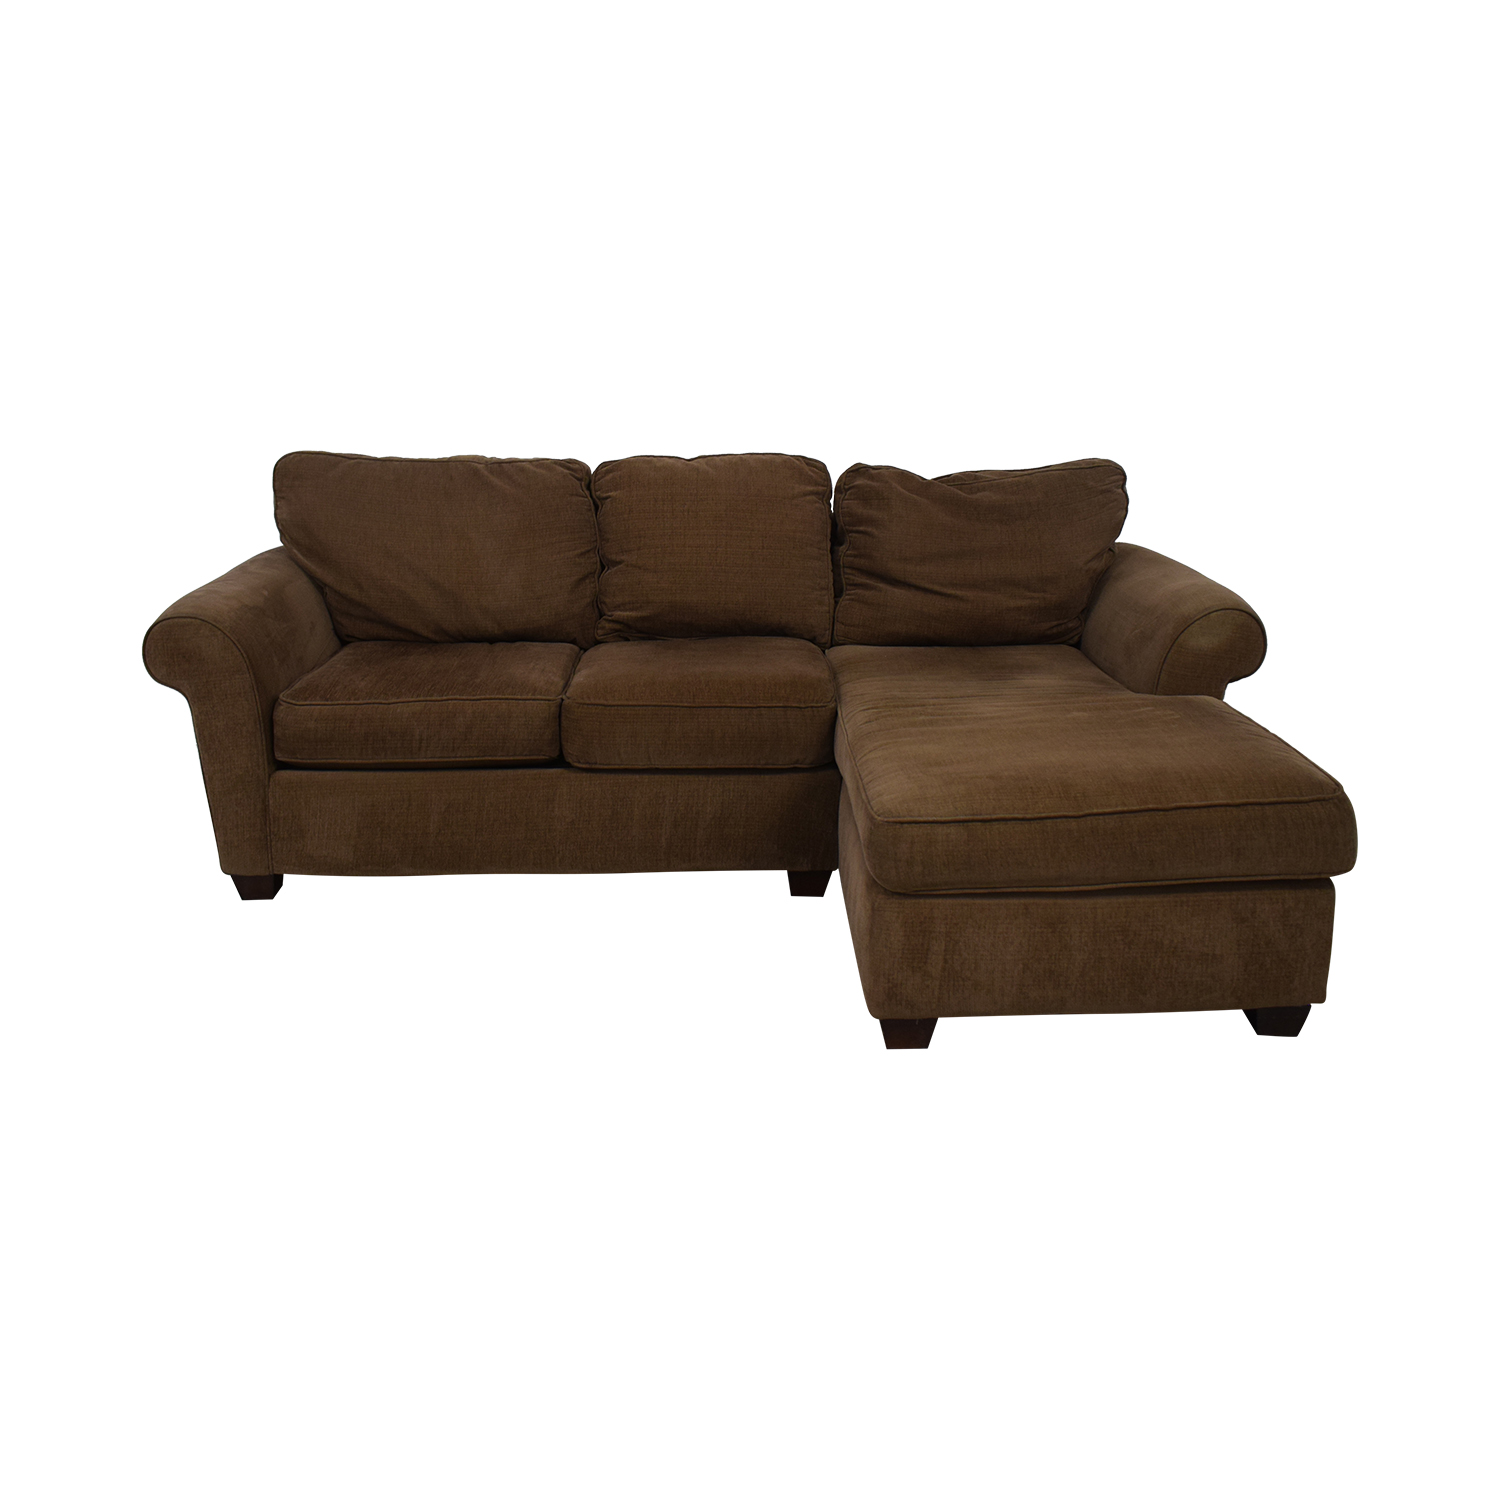 shop Bauhaus Furniture Bauhaus Furniture Brown Sofa With Chaise online